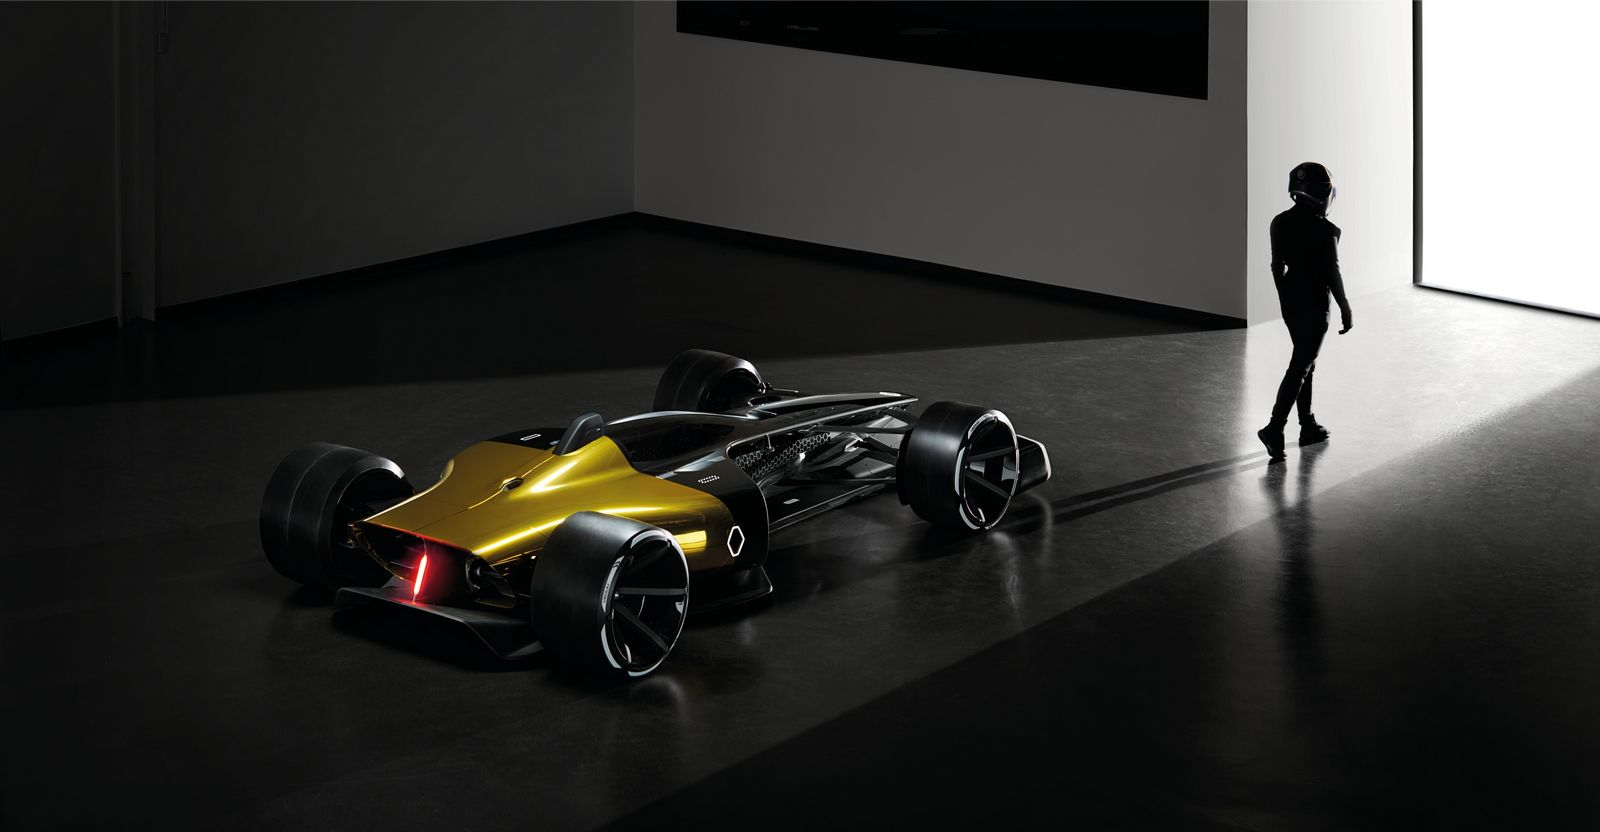 Renault RS 2027 Vision concept (8)